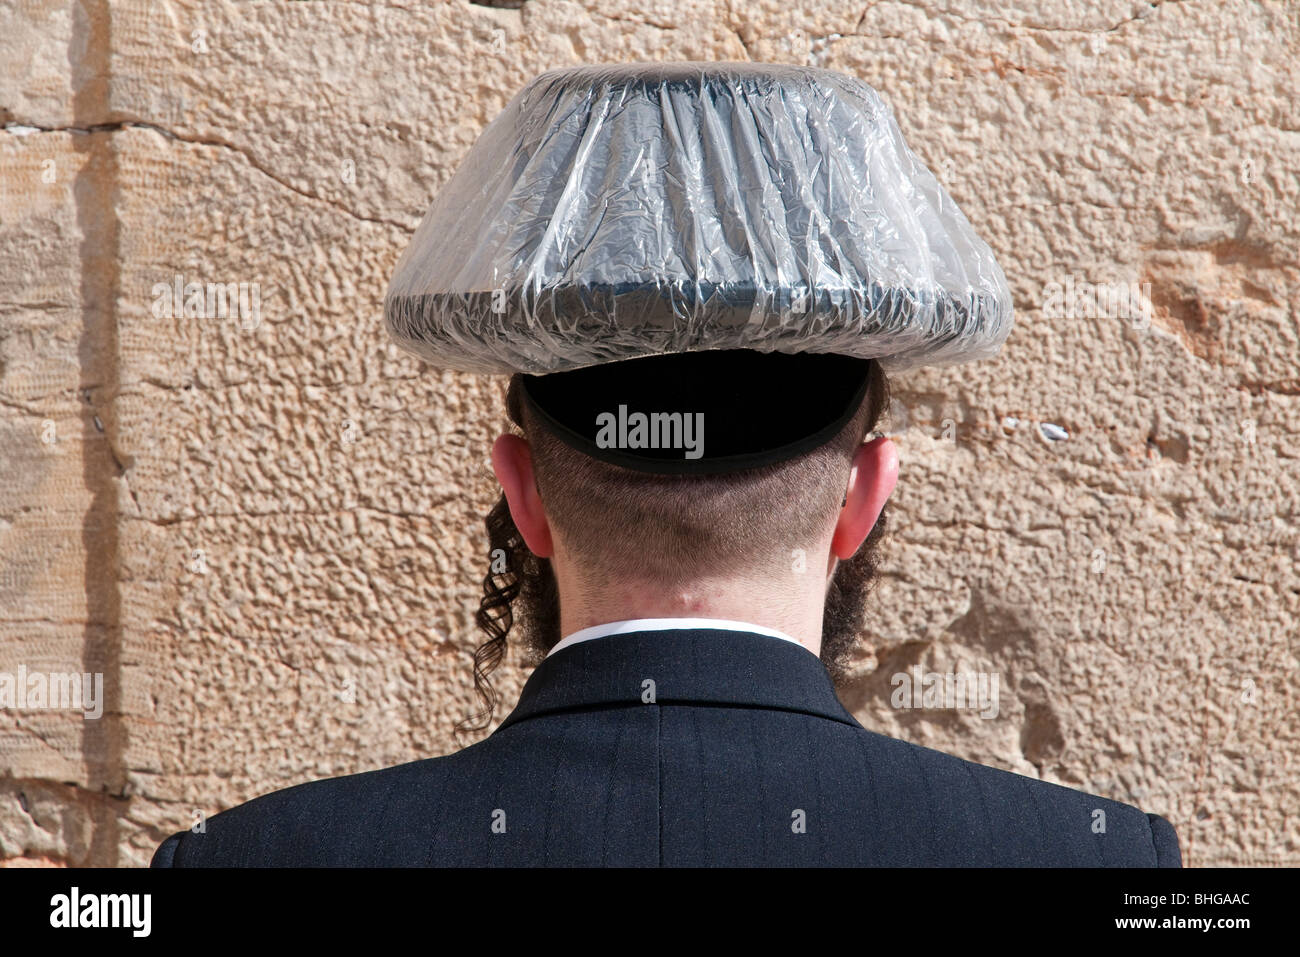 orthodox jew with hat wrapped in plastic bag praying at western wall - Stock Image